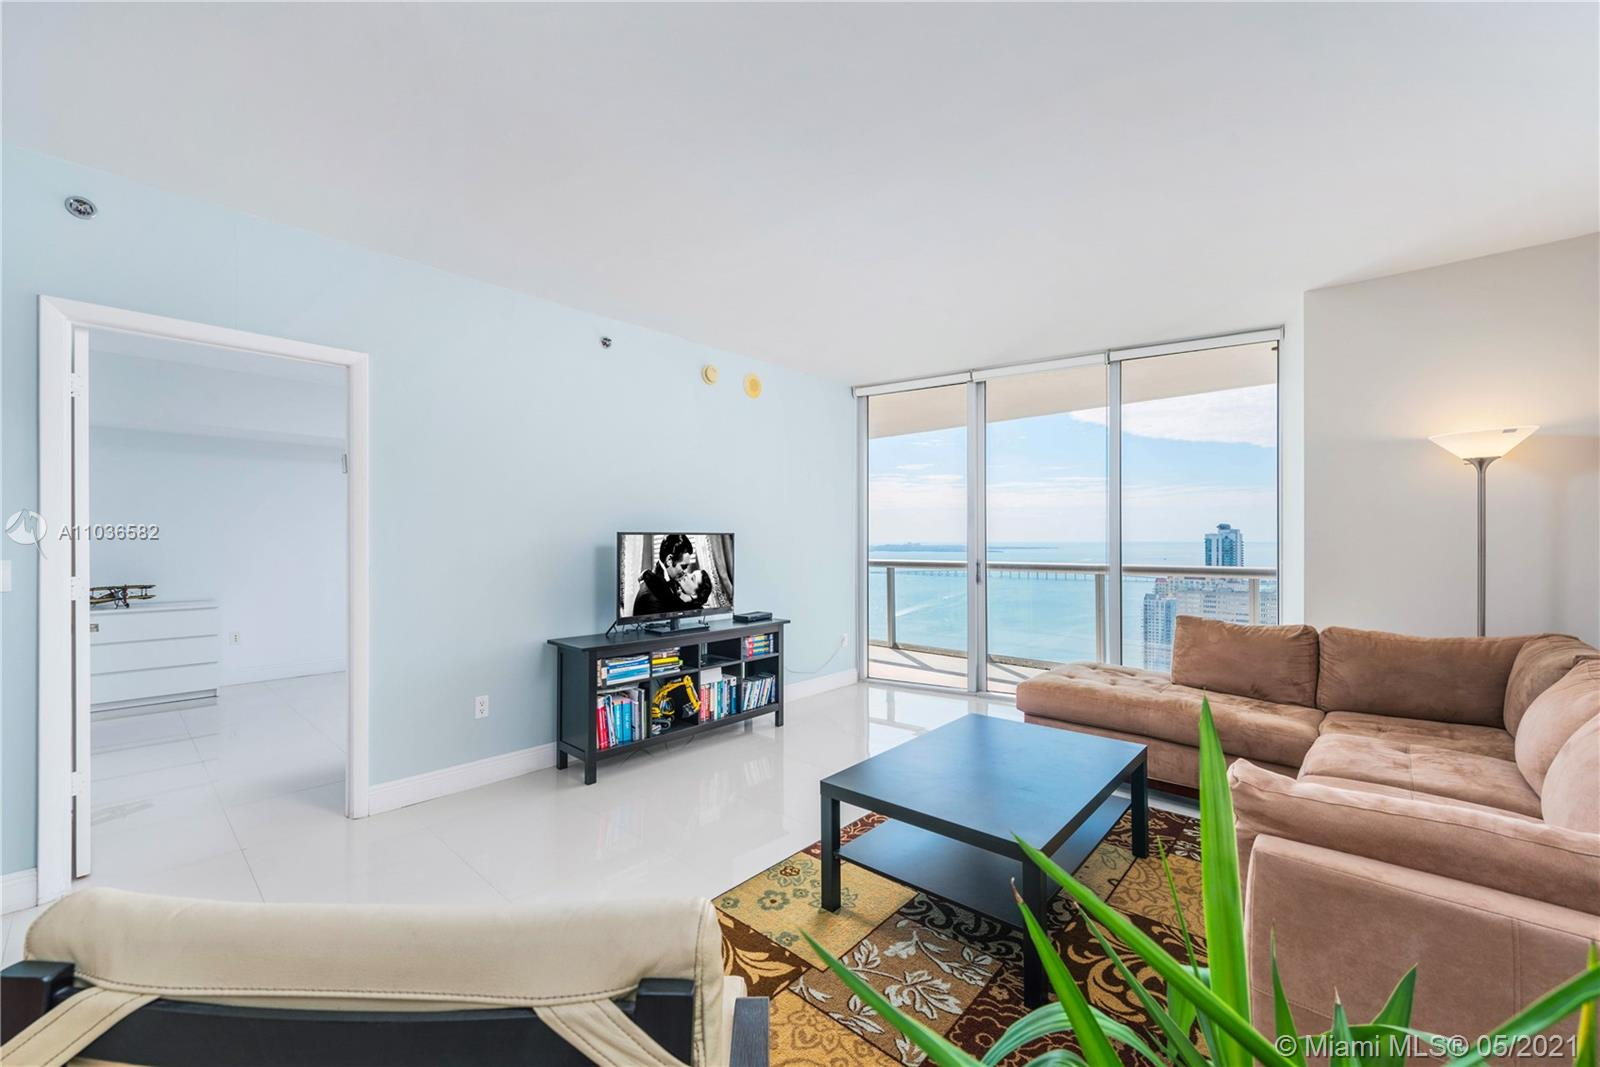 A spacious & bright 1 Bed, 1 Bath condo w/ over 1,000 interior square feet; white porcelain tiled floors in living areas; marble floors in the bathroom; a large, walk-in closet; kitchen appliances by Sub-Zero & Wolf; 10-foot-high ceilings w/ floor-to-ceiling glass windows, and breathtaking views of Biscayne Bay & city skyline from the 47th floor. The largest 1 bedroom floor plan at Icon Brickell. Includes 1 assigned parking space. Monthly condo dues cover basic cable TV, high-speed internet, and water. Building amenities include a 300-foot-long swimming pool, 50-person hot tub, poolside food & beverage service, movie theater, a 28,000-square-foot spa & fitness center, full-service concierge, on-site restaurants, and more. Within blocks of the shops & restaurants at Brickell City Centre.